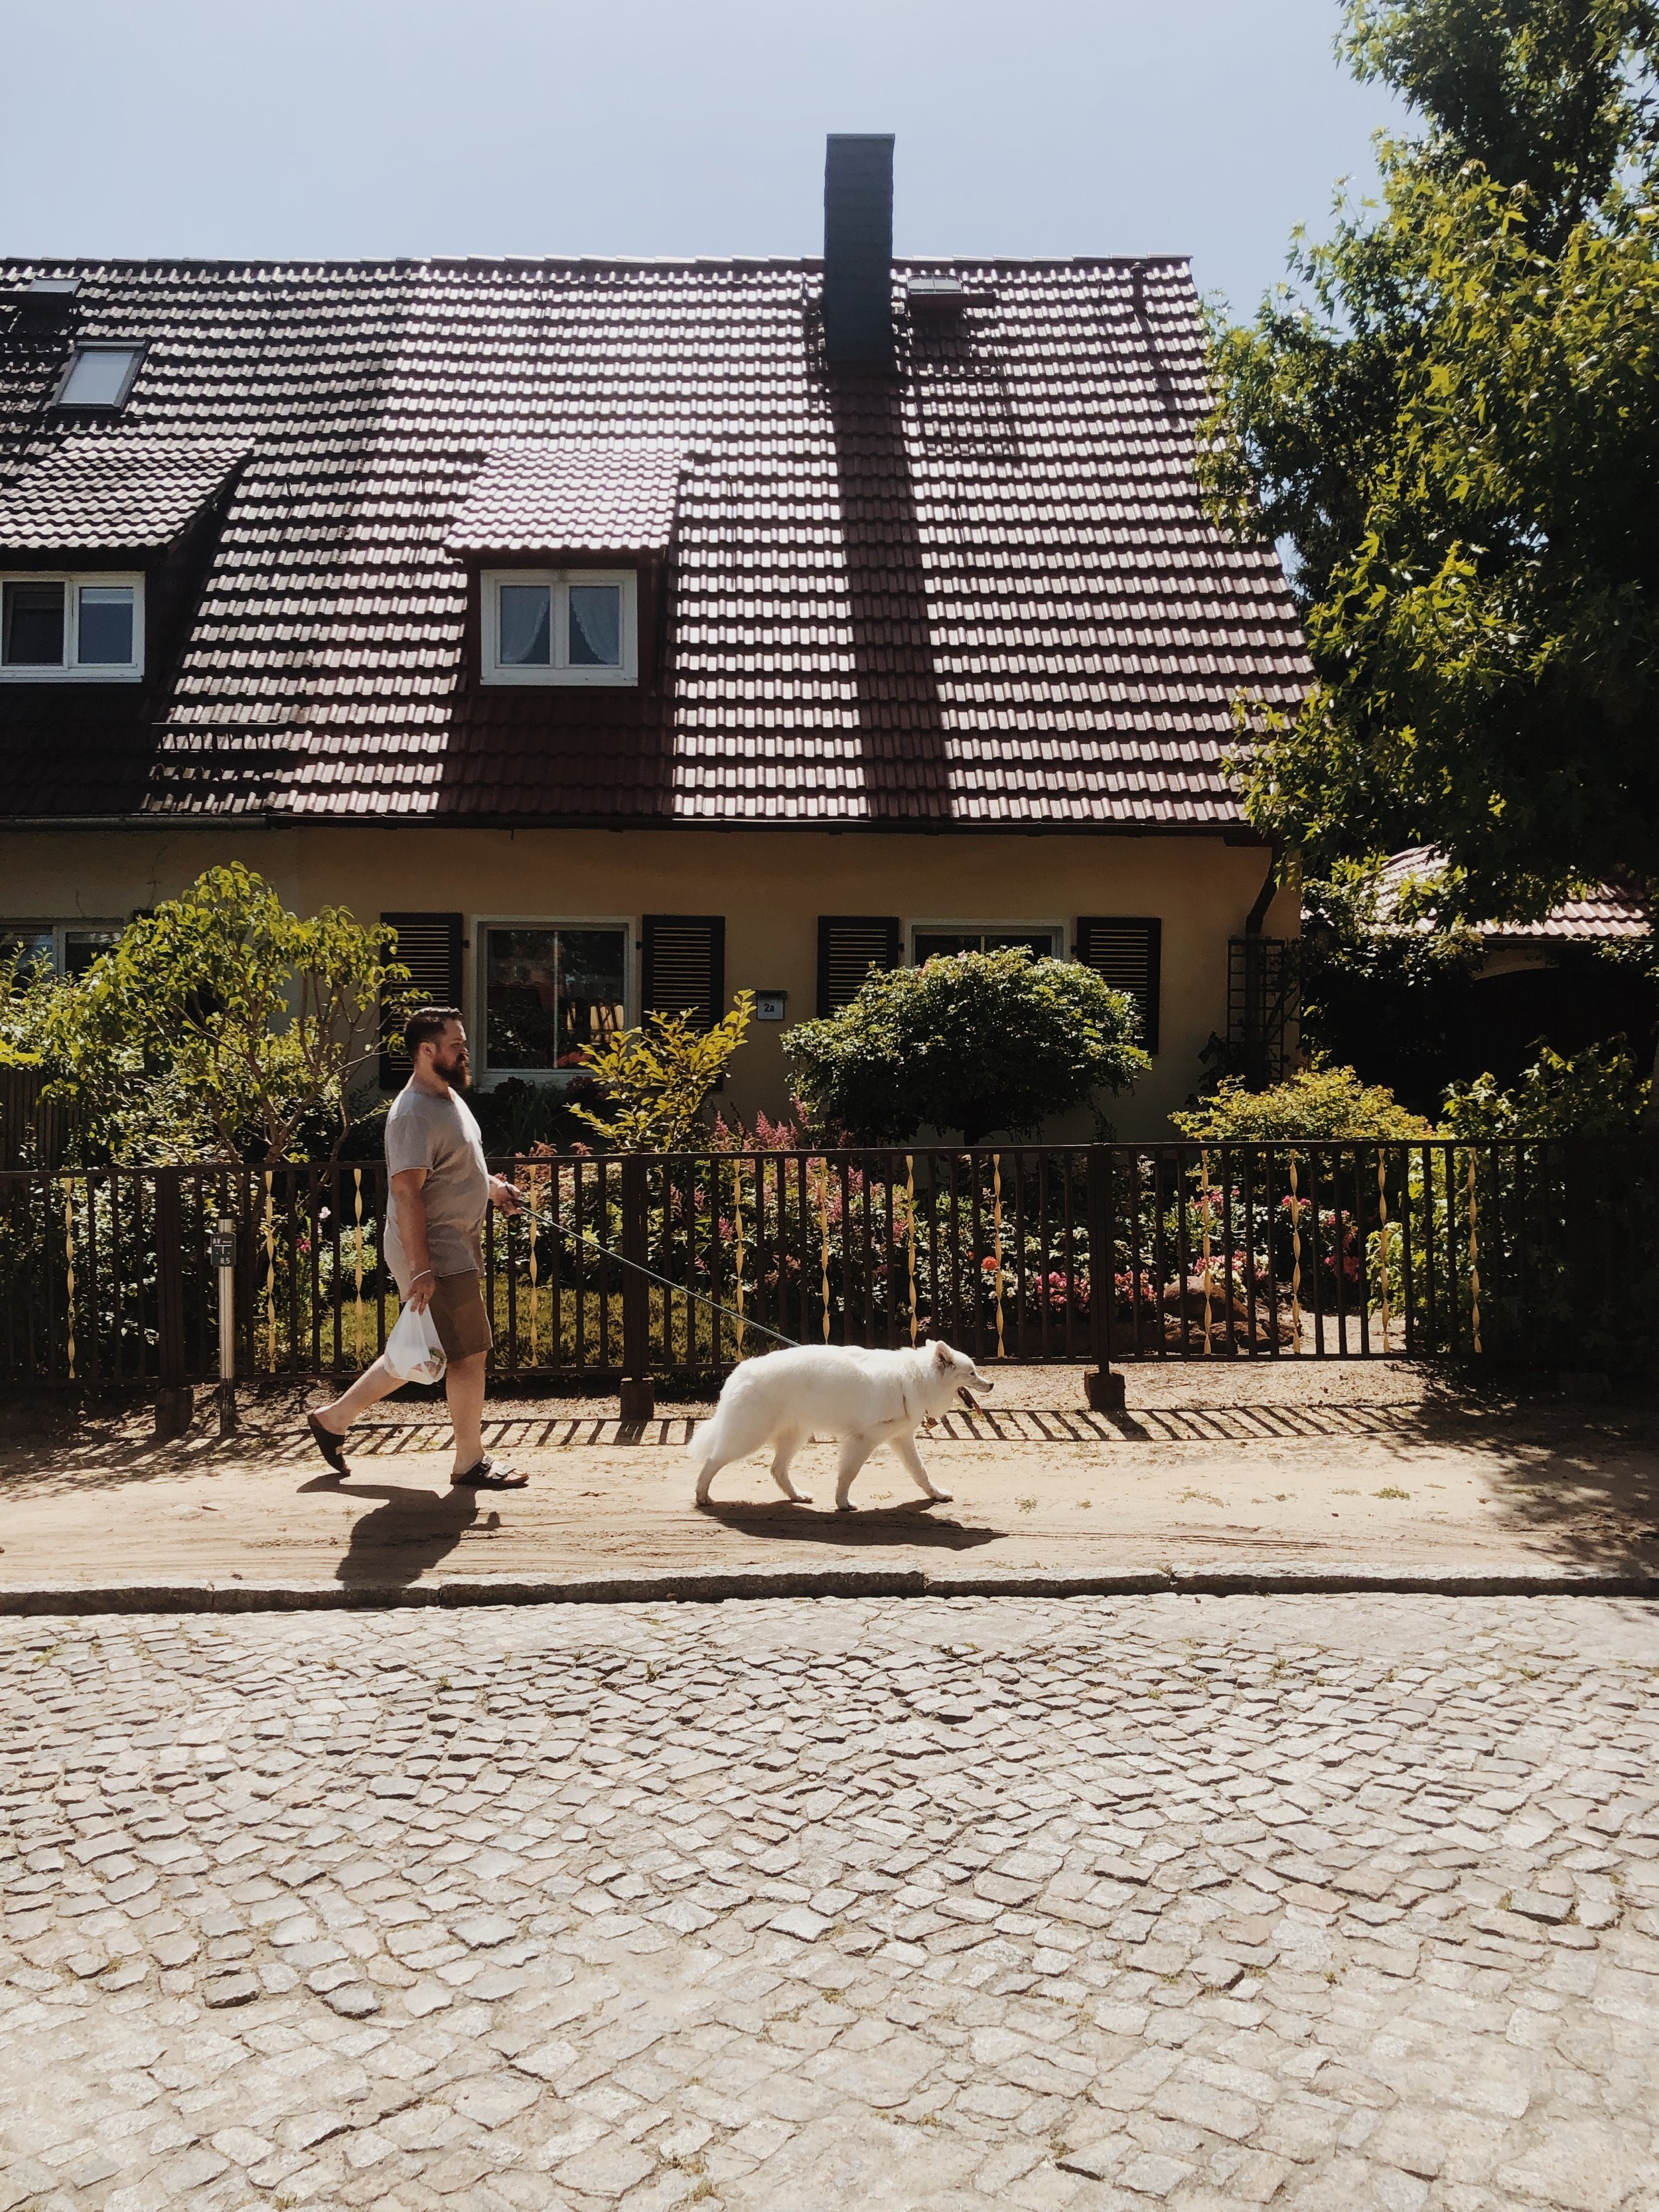 Indie's first official Berlin walk! -